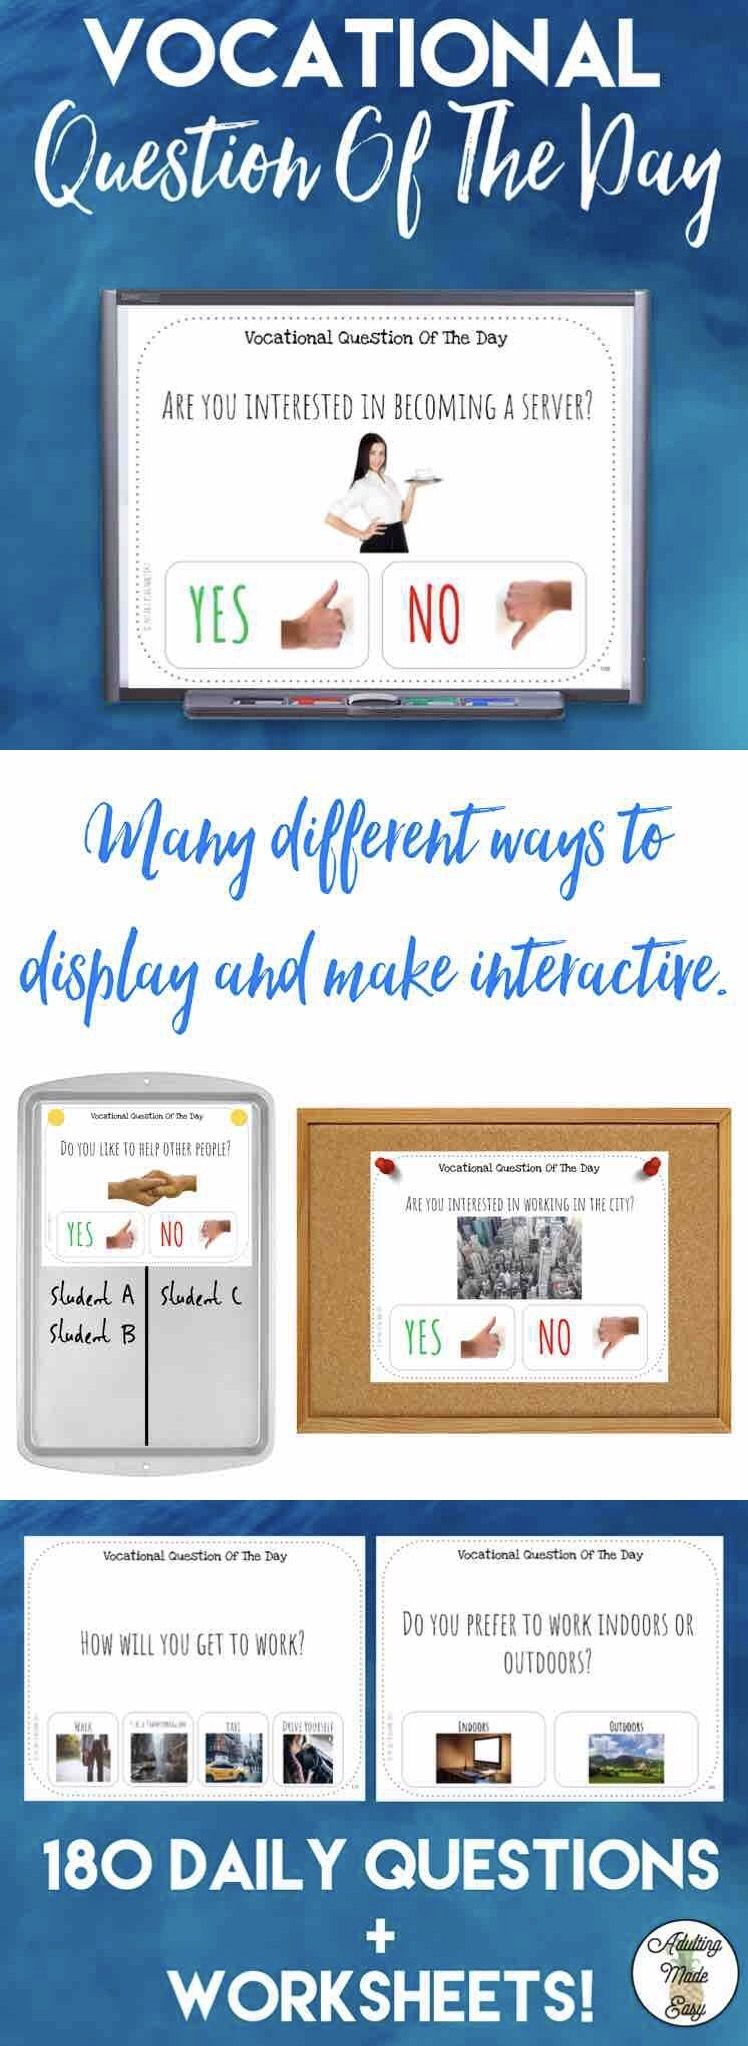 Worksheets Vocational Skills Worksheets vocational question of the day w visuals pinterest worksheets 180 pages daily interest questions with visualsreal images coordinating survey